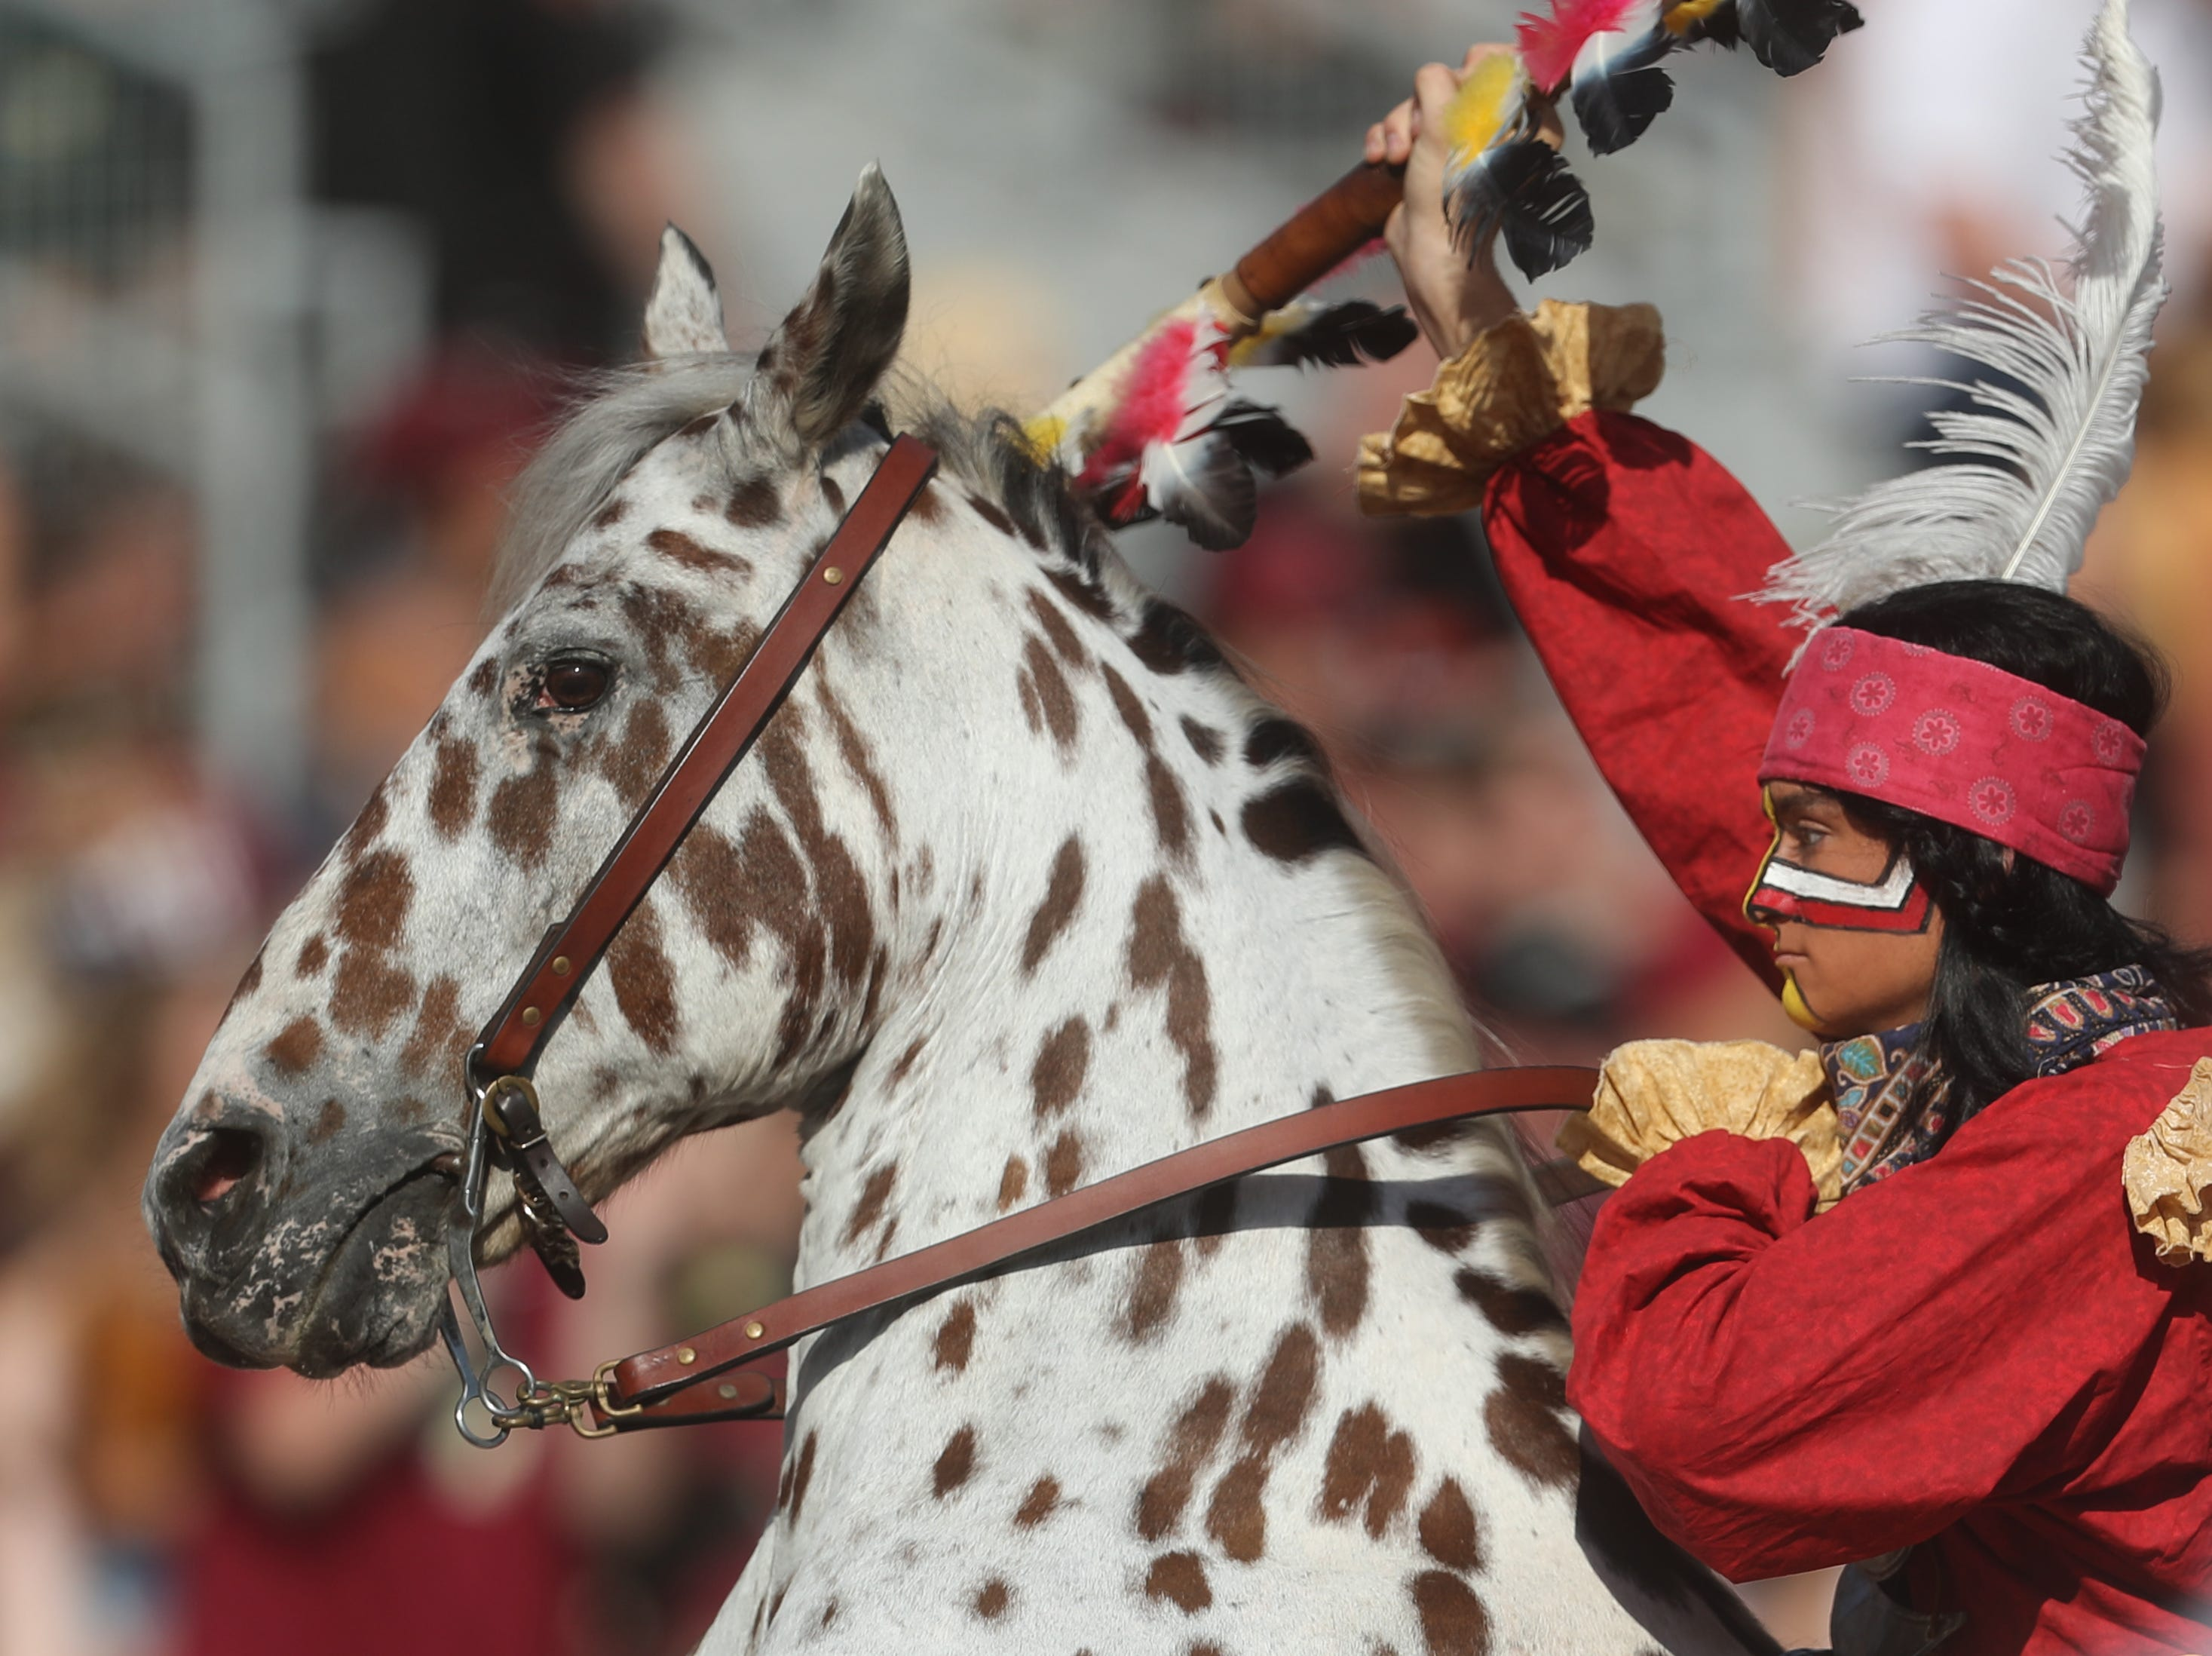 Chief Osceola and Renegade celebrate during a game between the Florida State University Seminoles and the Northern Illinois University Huskies at Doak S. Campbell Stadium in Tallahassee, Fla. Saturday, September 22, 2018.